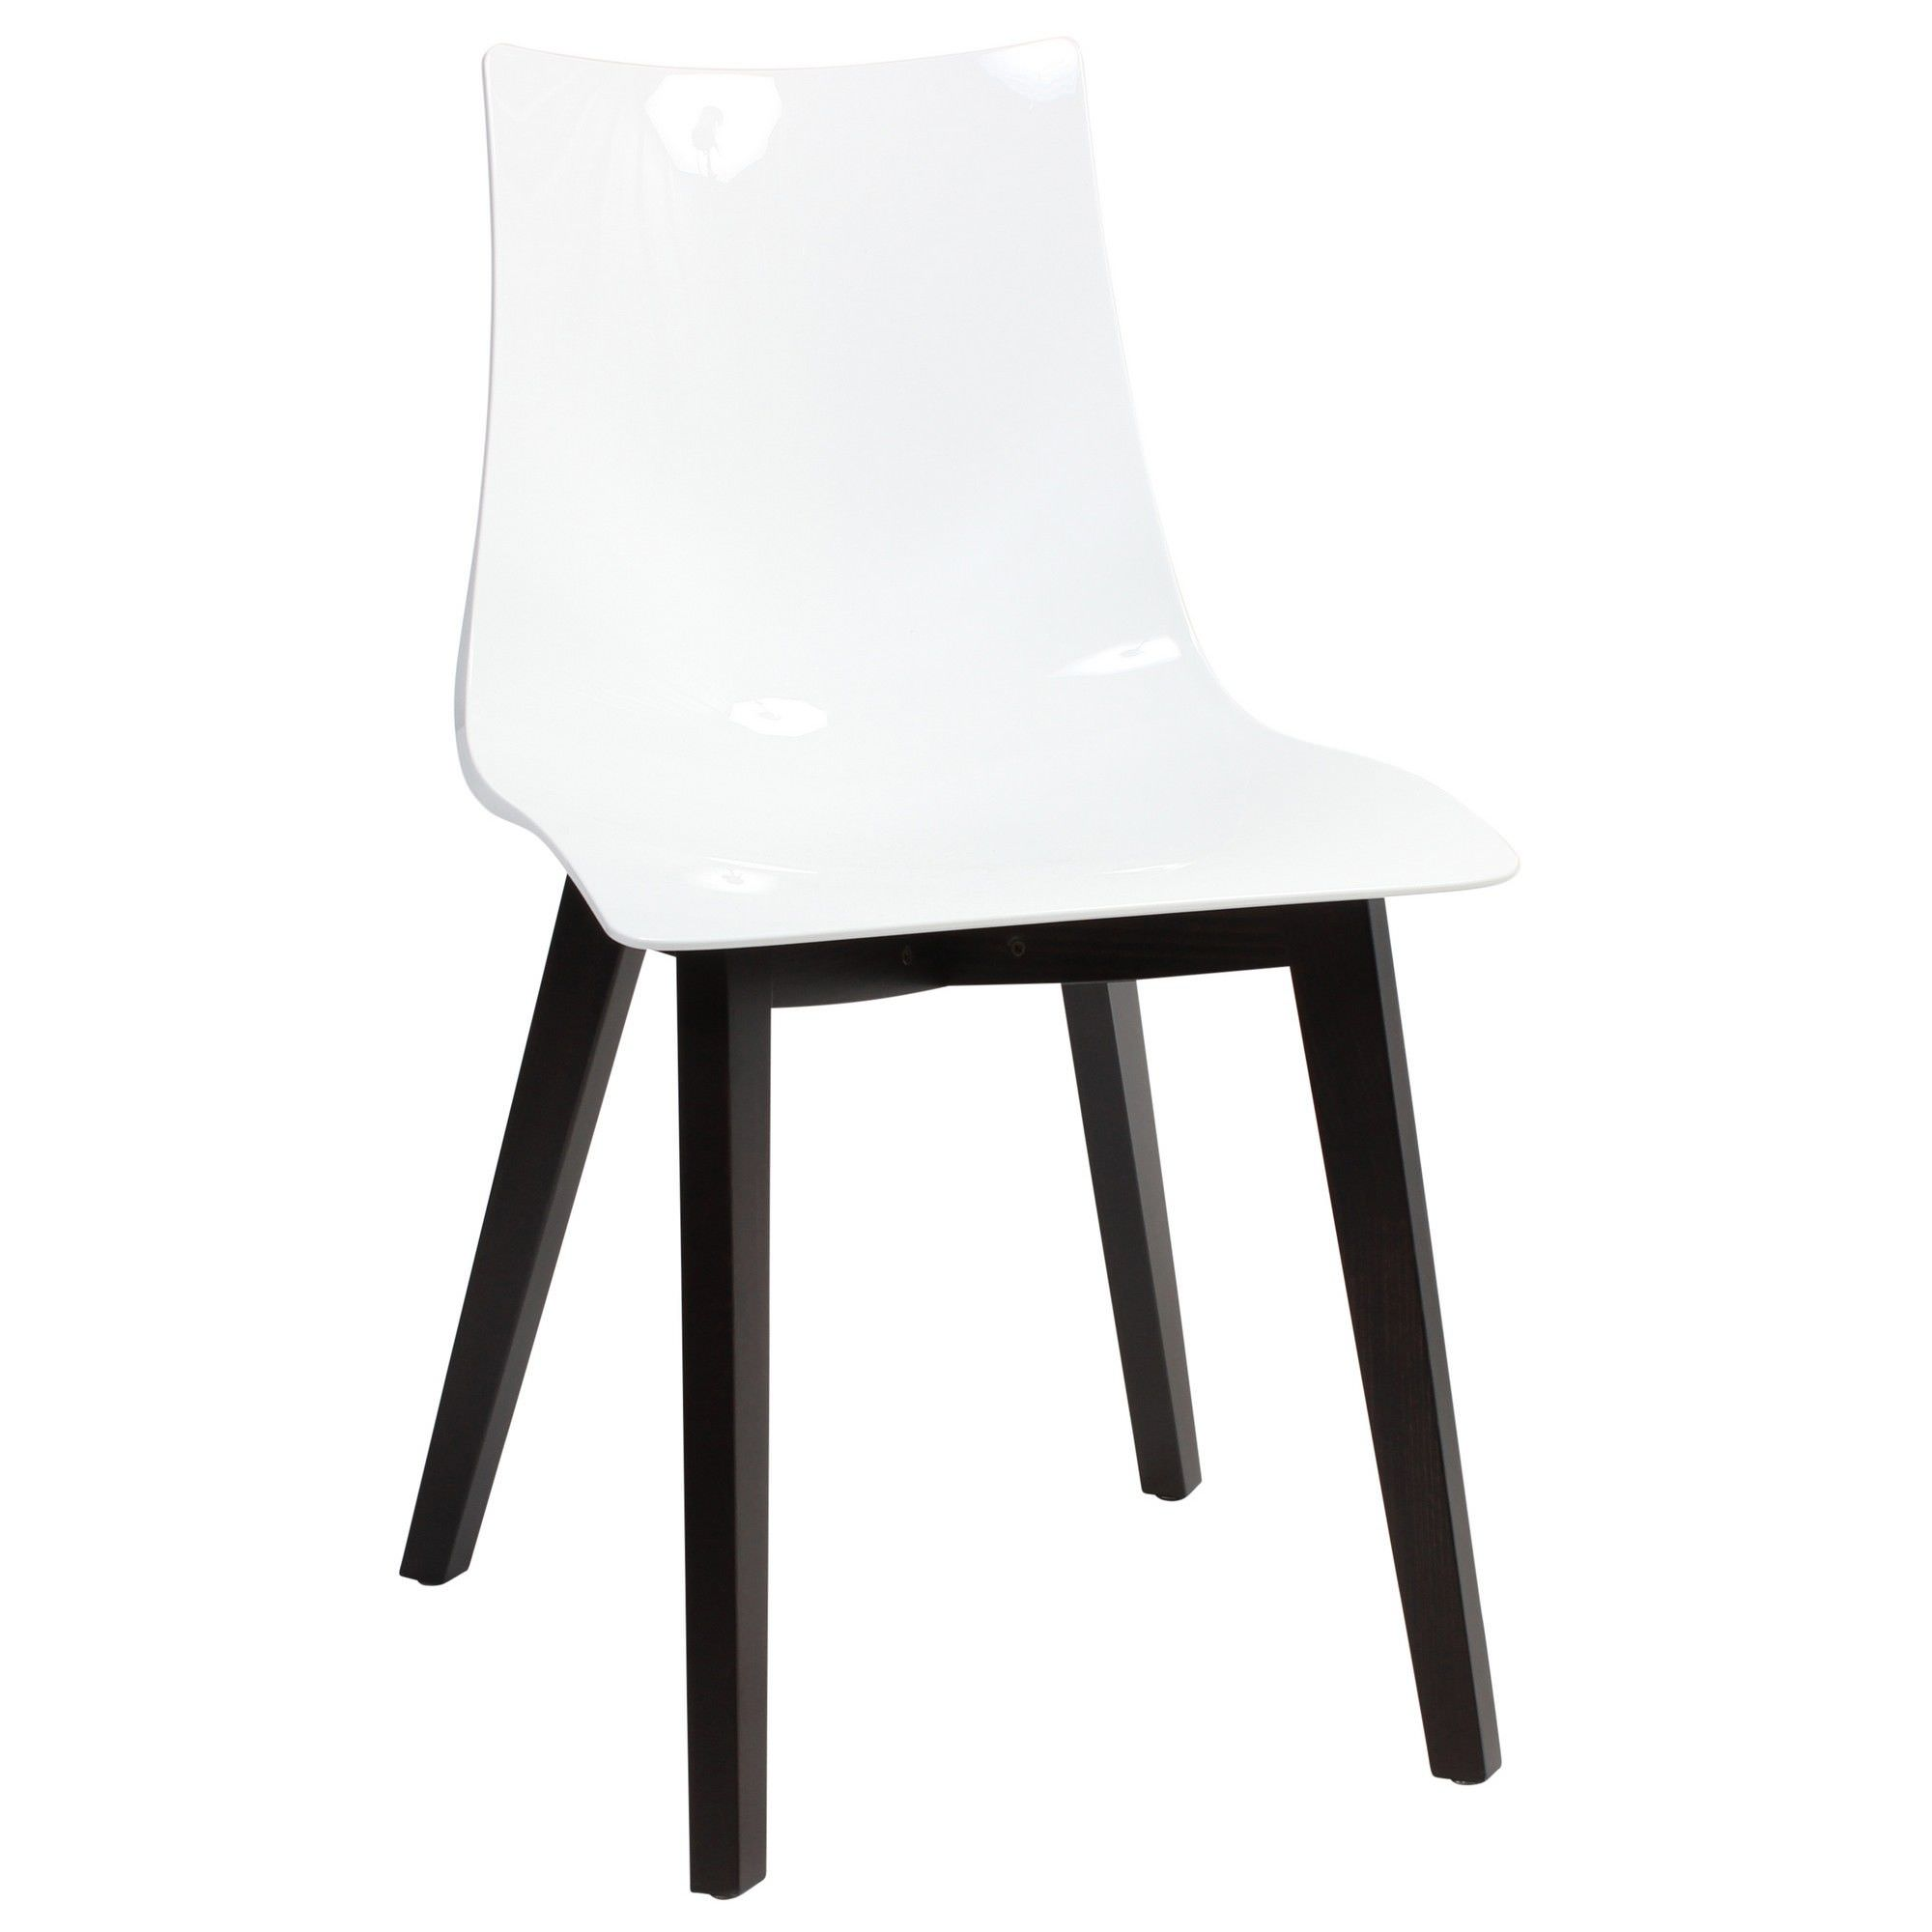 Zebra Italian Made Commercial Grade Dining Chair, Timber Leg, White / Wenge